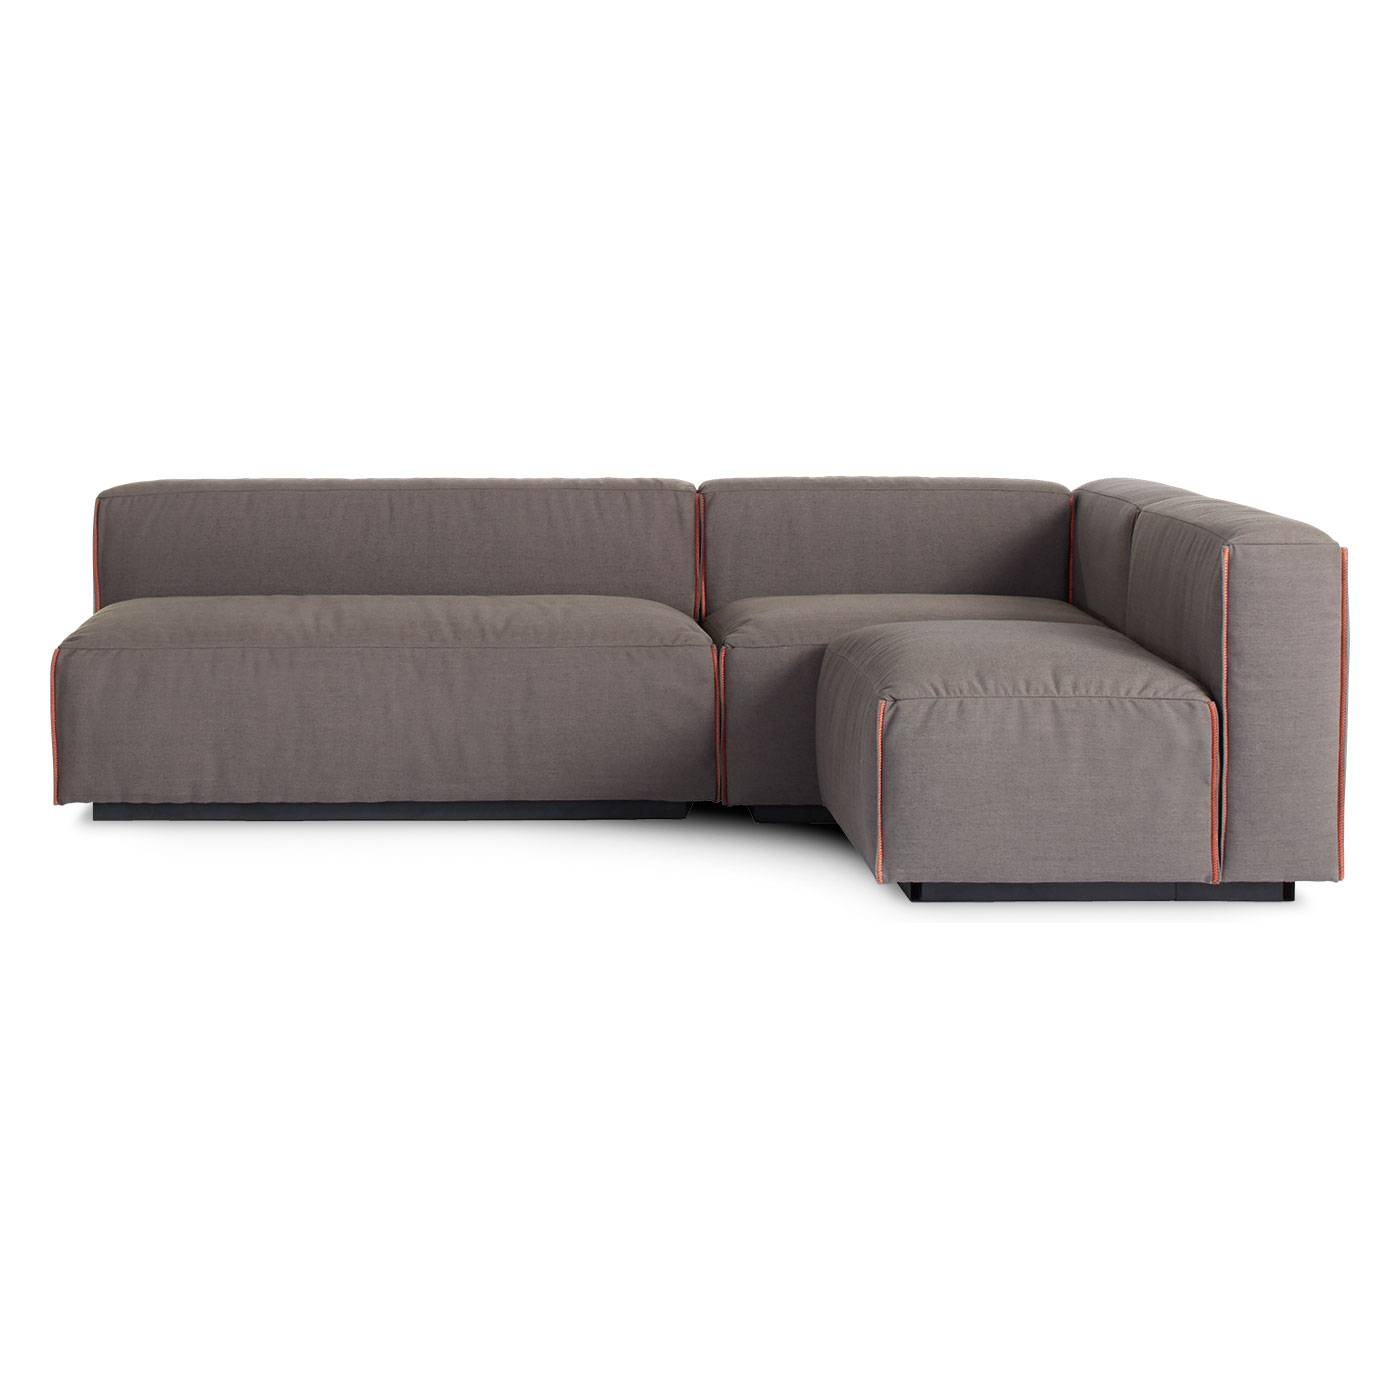 Cleon Medium Sectional – Armless Sectional | Blu Dot With Armless Sectional Sofas (View 4 of 30)